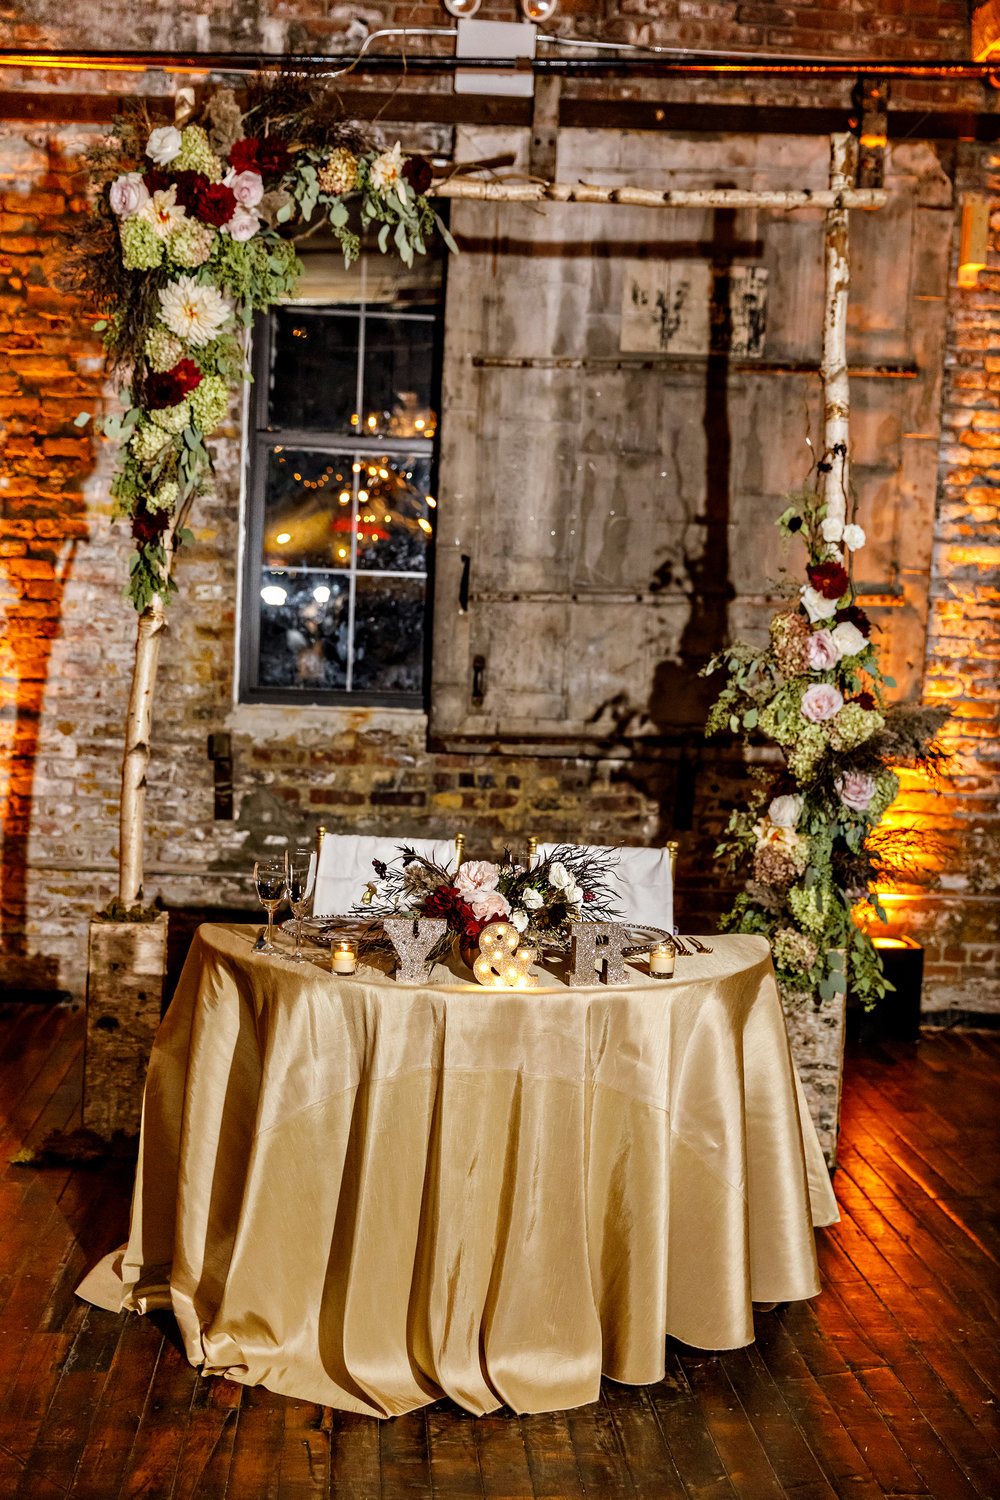 victorious-events-nyc-040-yanique-rondel-greenpoint-loft-wedding-amy-anaiz.jpg